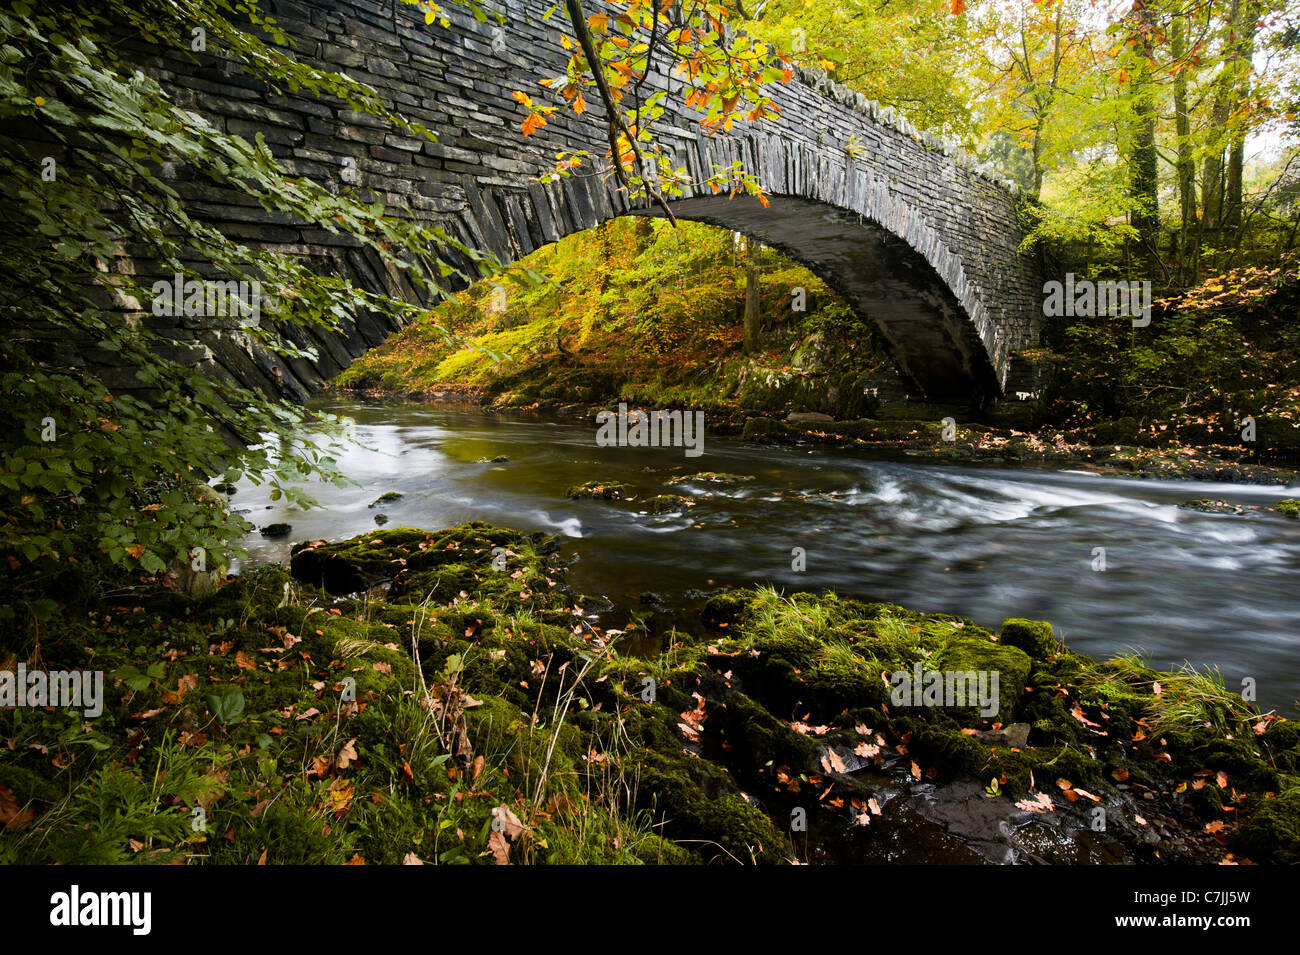 Stone footbridge over a small river in Autumn, Lake District, England, UK - Stock Image